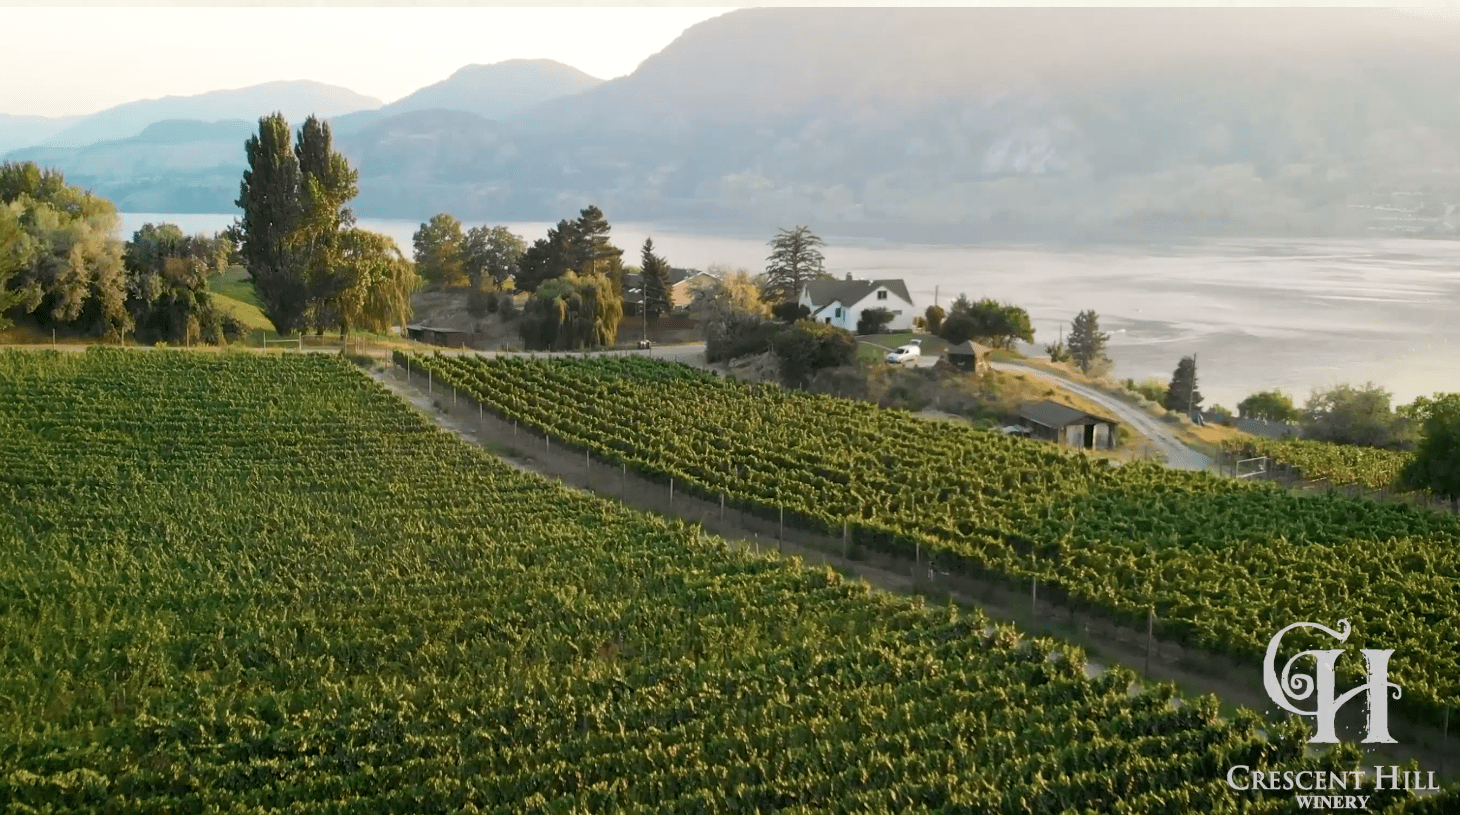 #JointheClub The Heart of Wine Country™ Wine Club with Crescent Hill